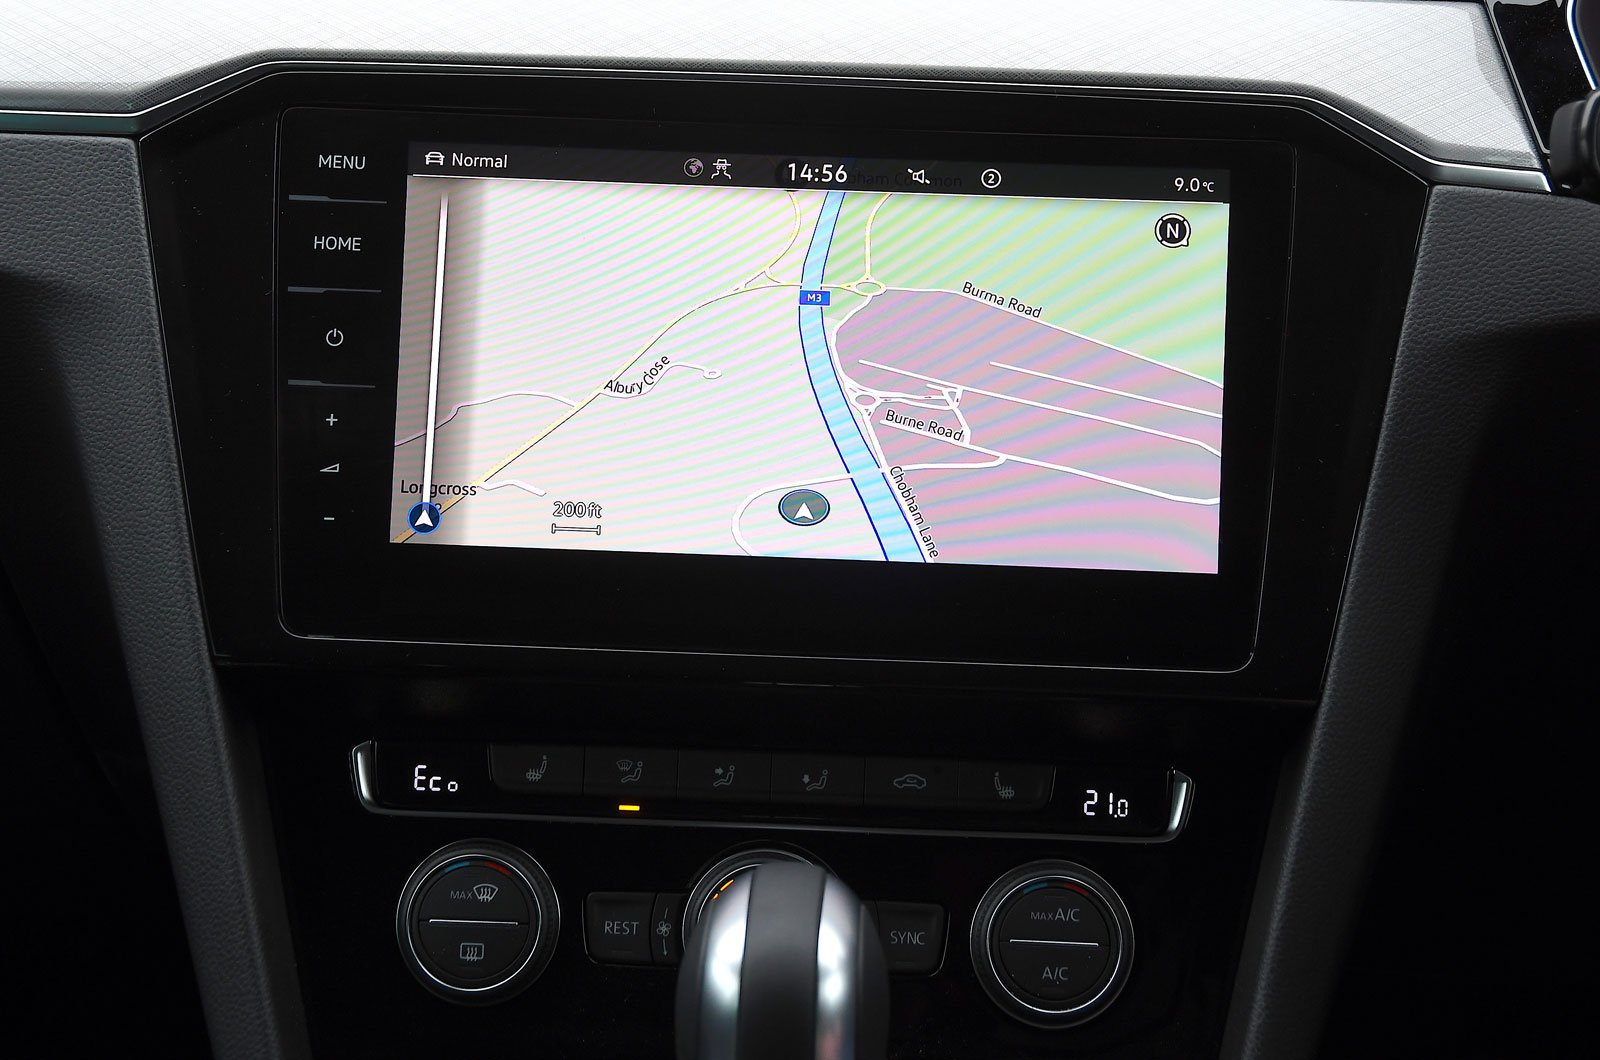 Volkswagen infotainment screen